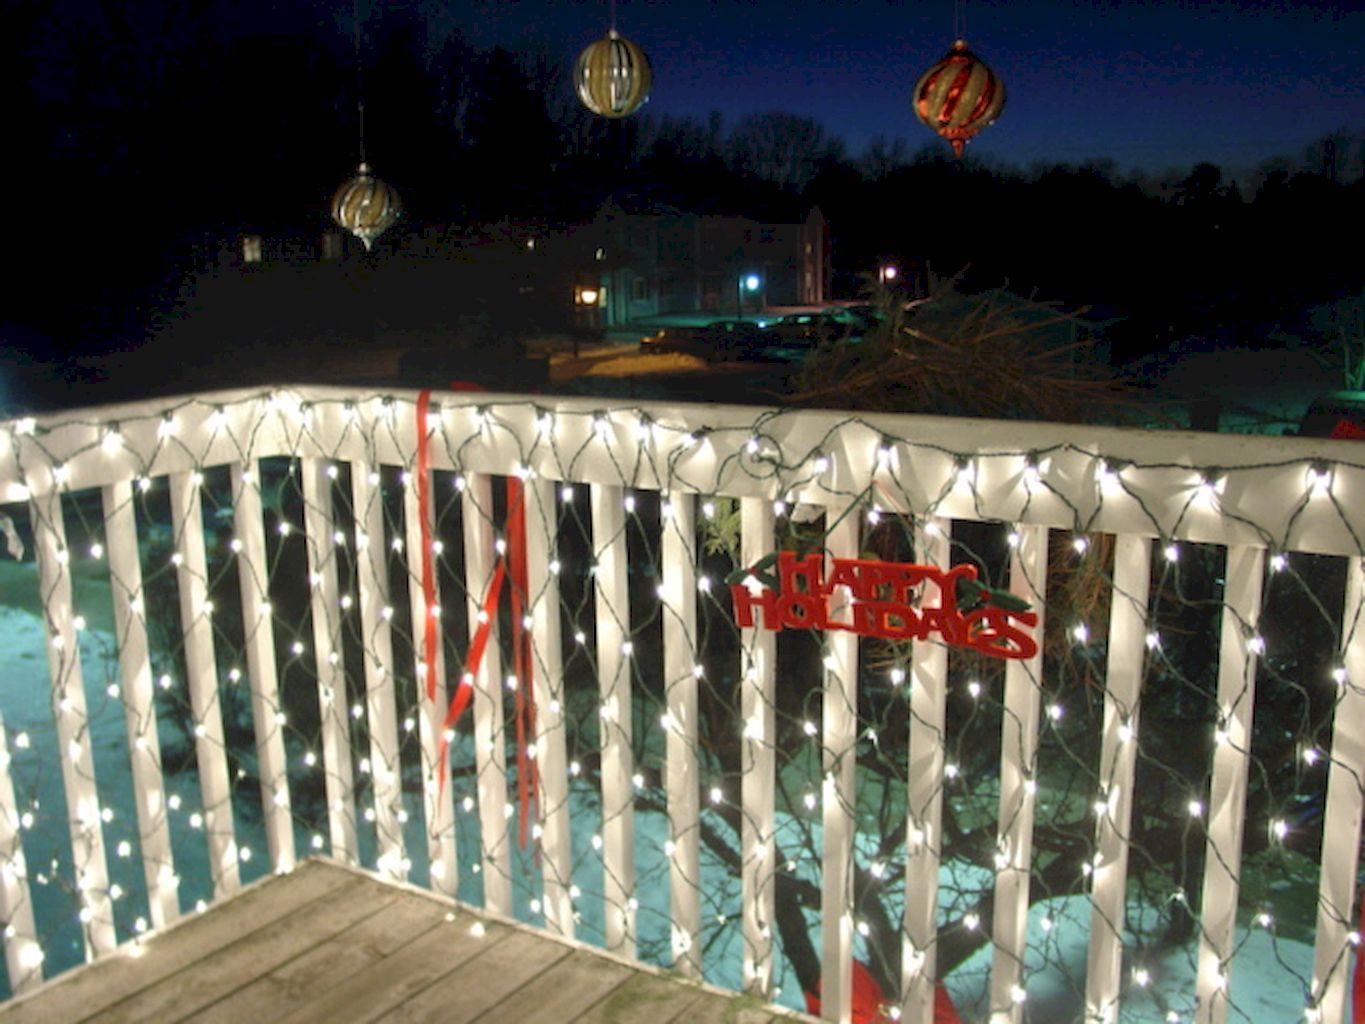 80 cozy apartment balcony decorating ideas insidecoratecom - Apartment Balcony Christmas Decorating Ideas